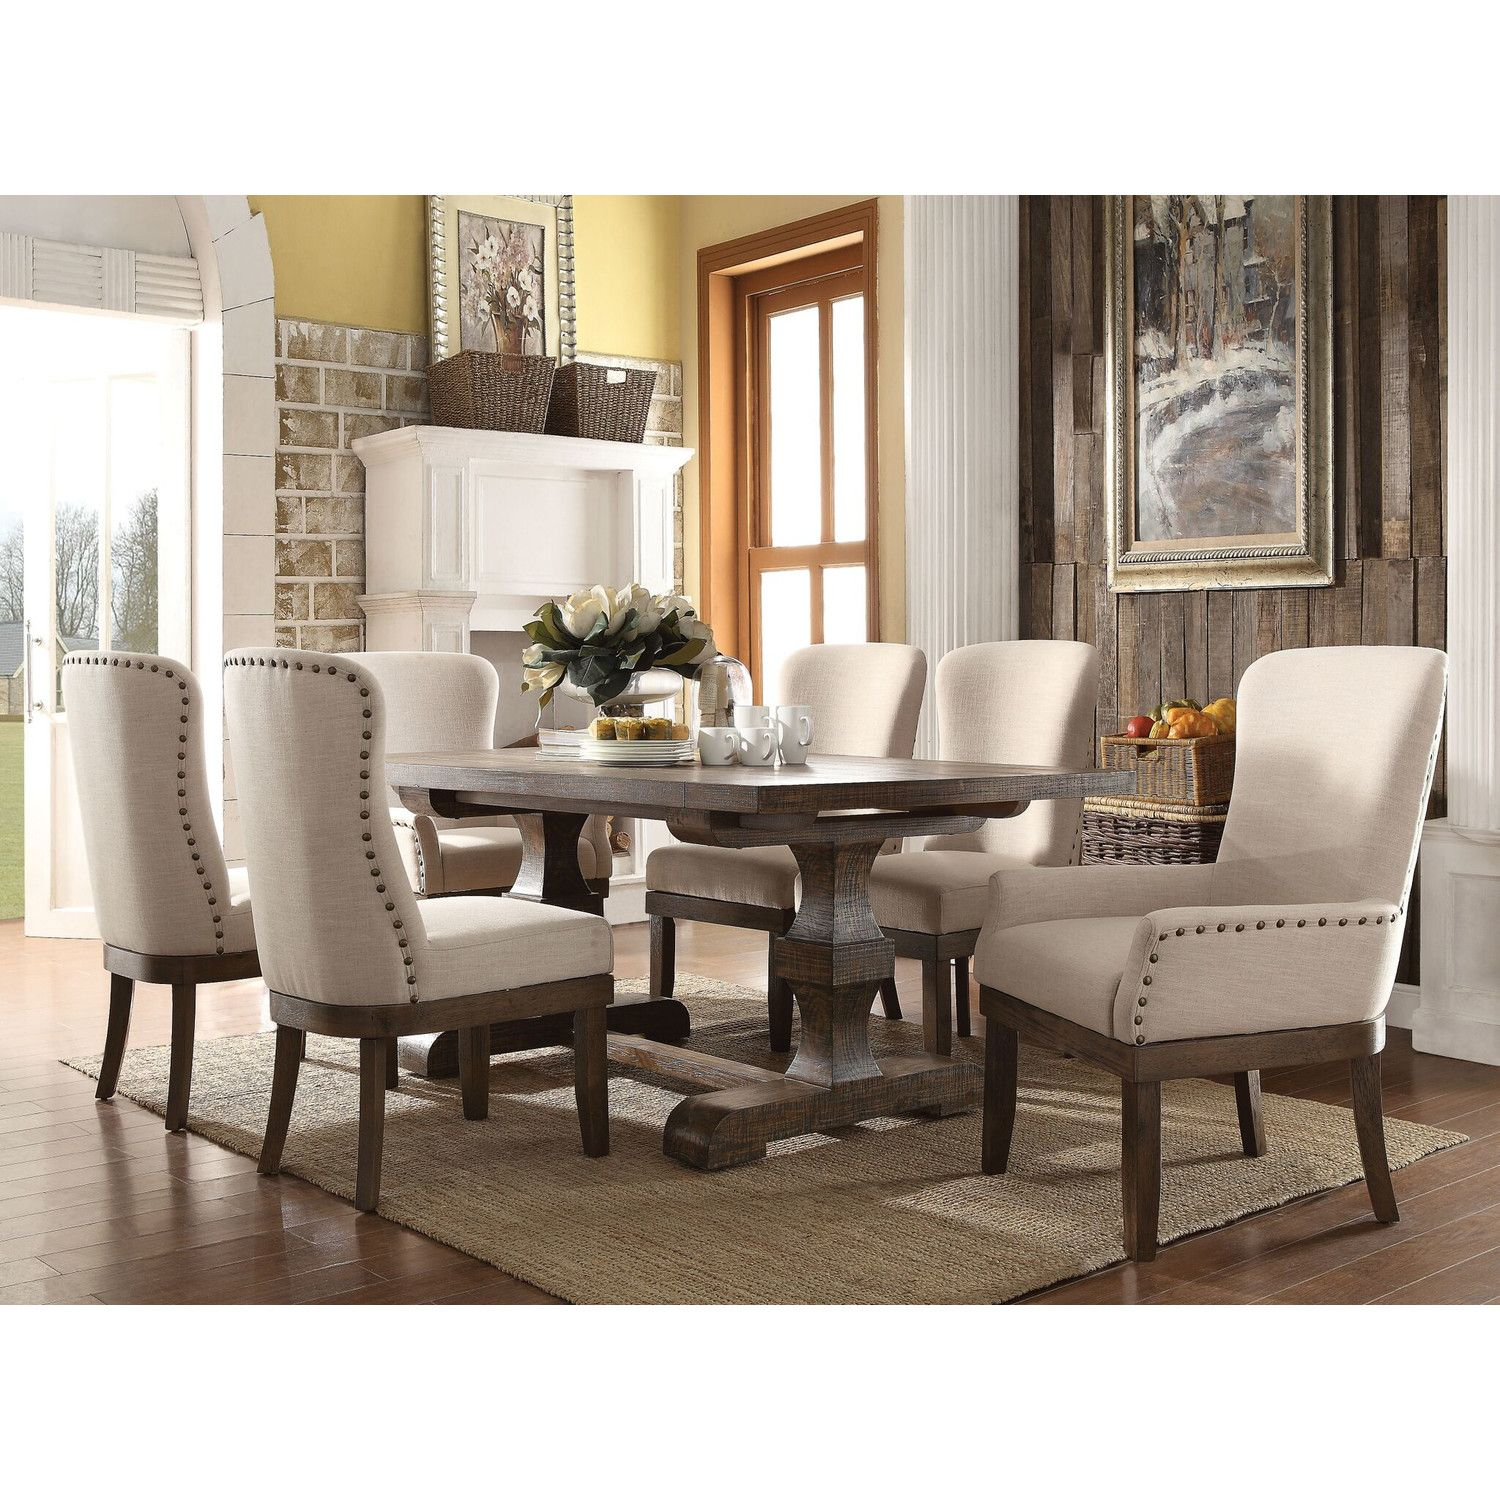 Infini Furnishings Mulhouse Piece Dining Set Reviews Wayfair - Wayfair white dining table